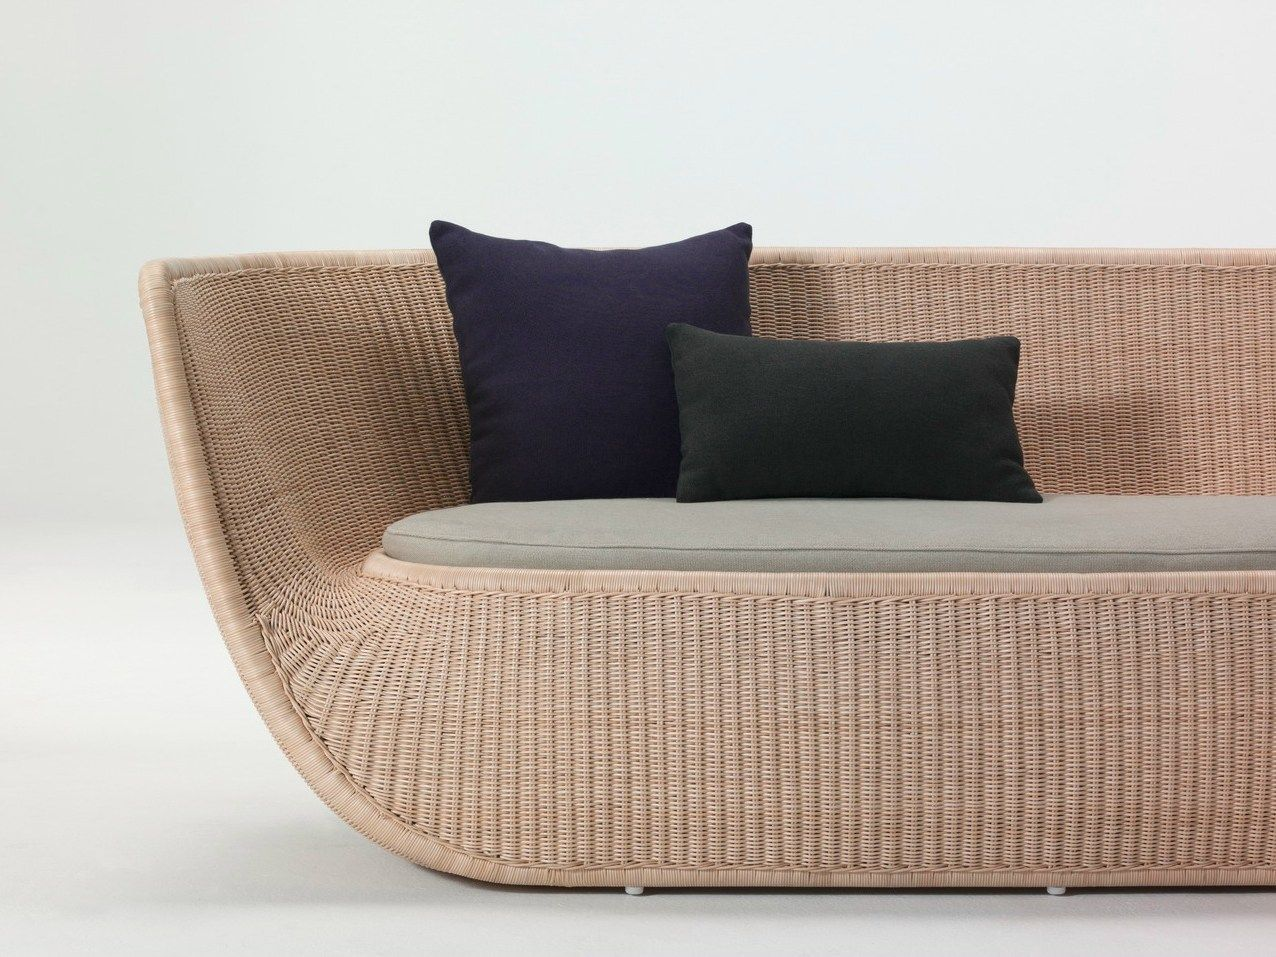 Sofa Rattan Stylish Designs Showcase The Elegance Of Rattan Furniture